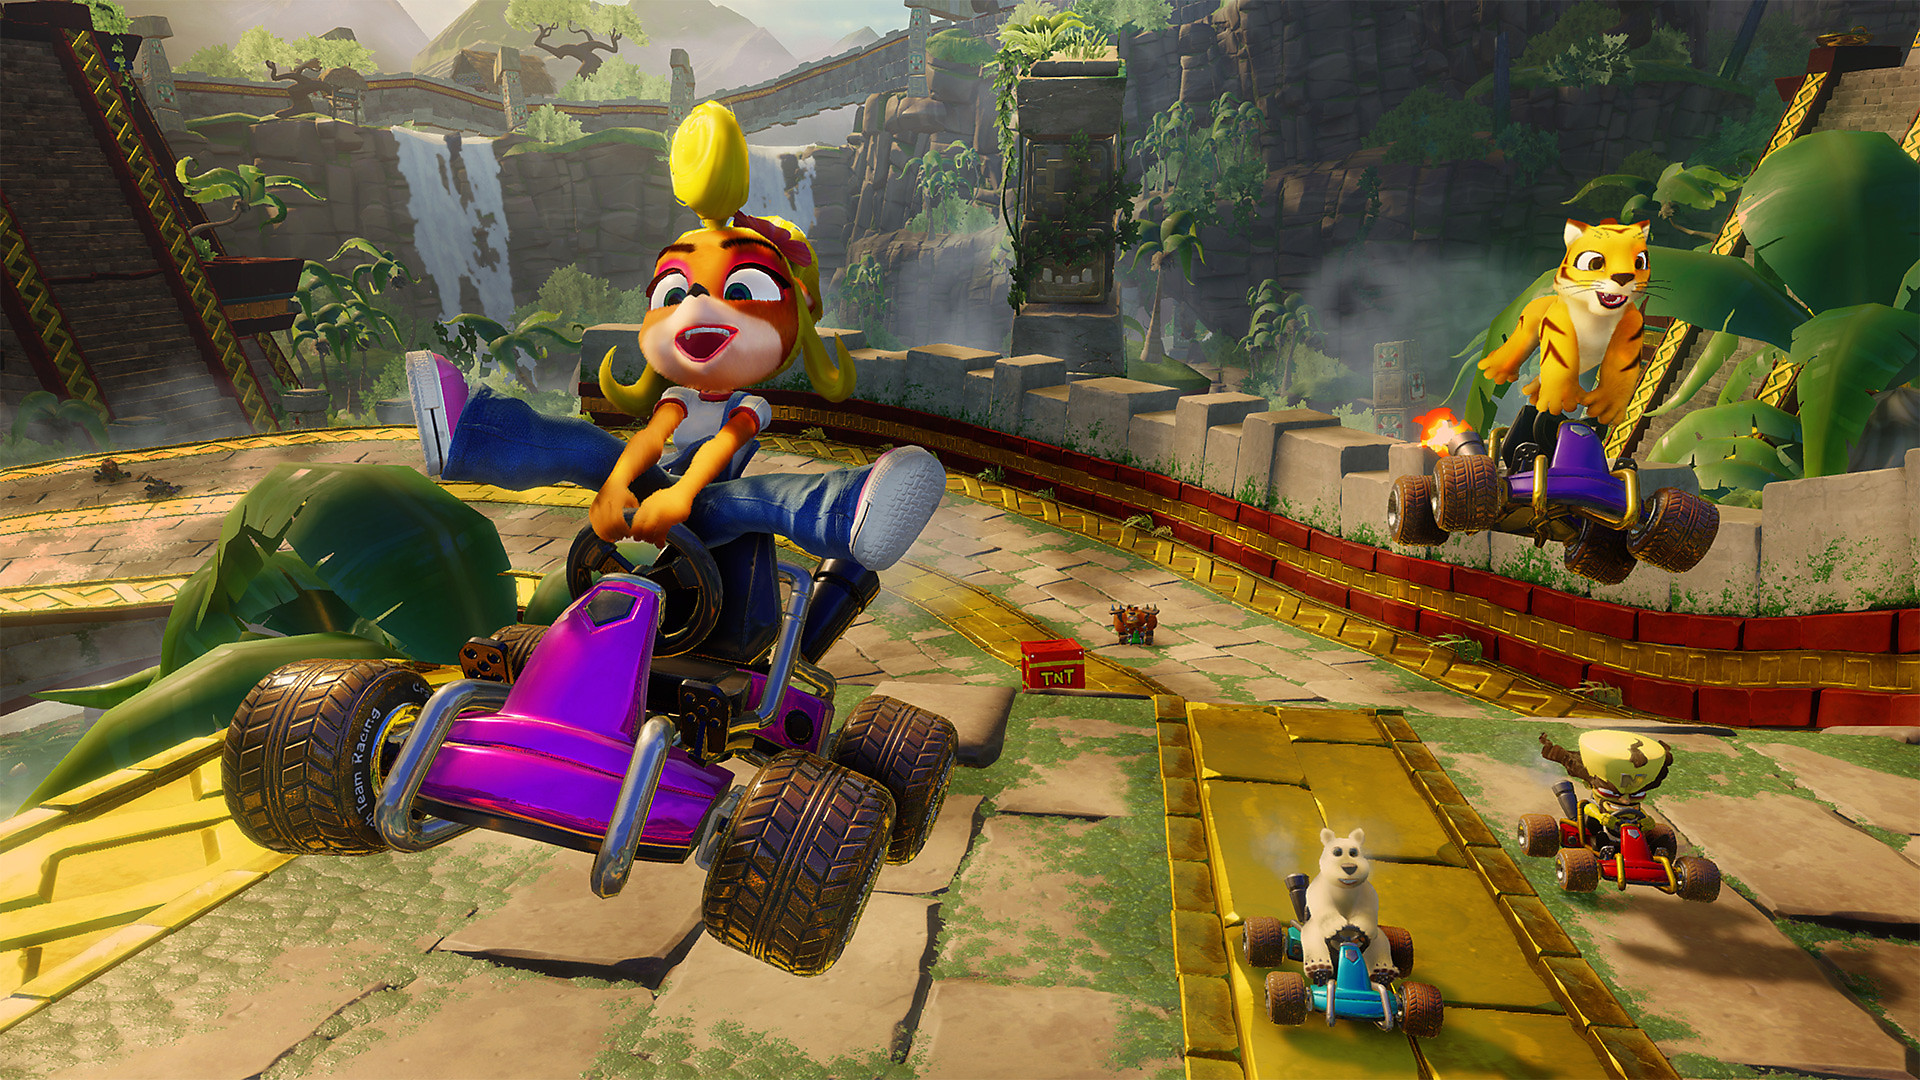 Crash Team Racing Nitro-Fueled Screenshot - Flying on a car